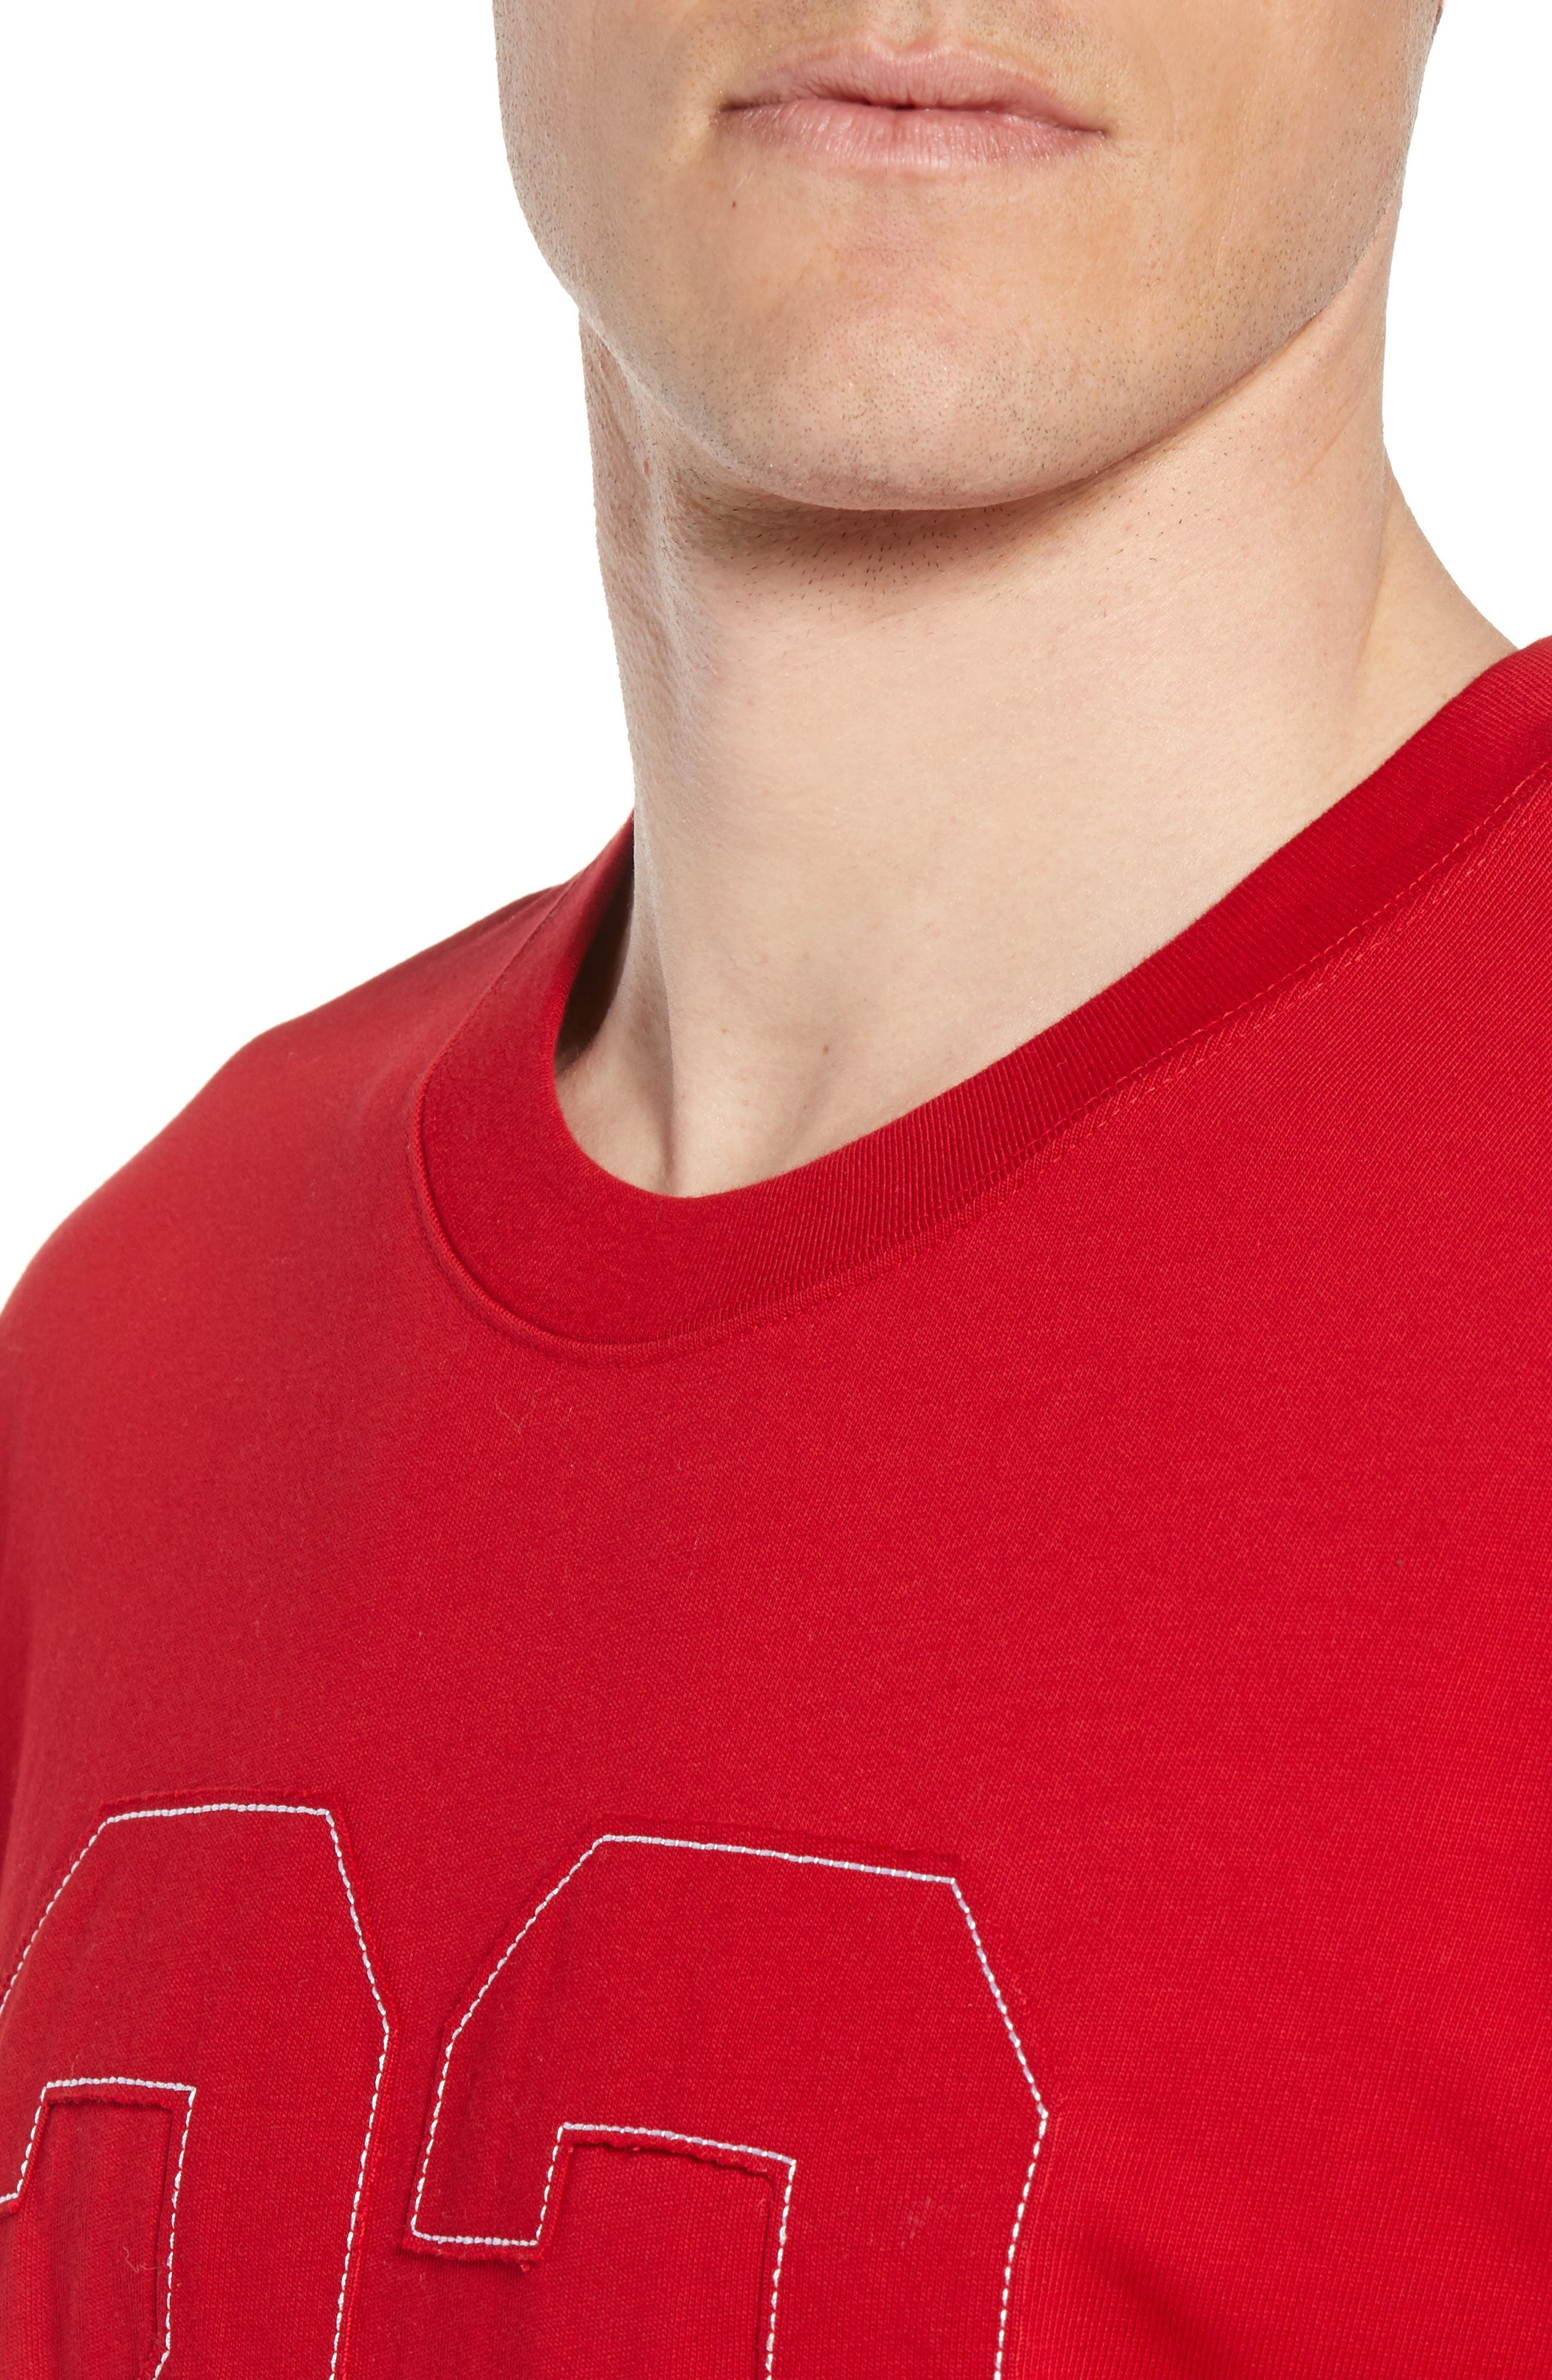 Nike Oversize 23 Graphic T-Shirt,                             Alternate thumbnail 4, color,                             GYM RED/ WHITE